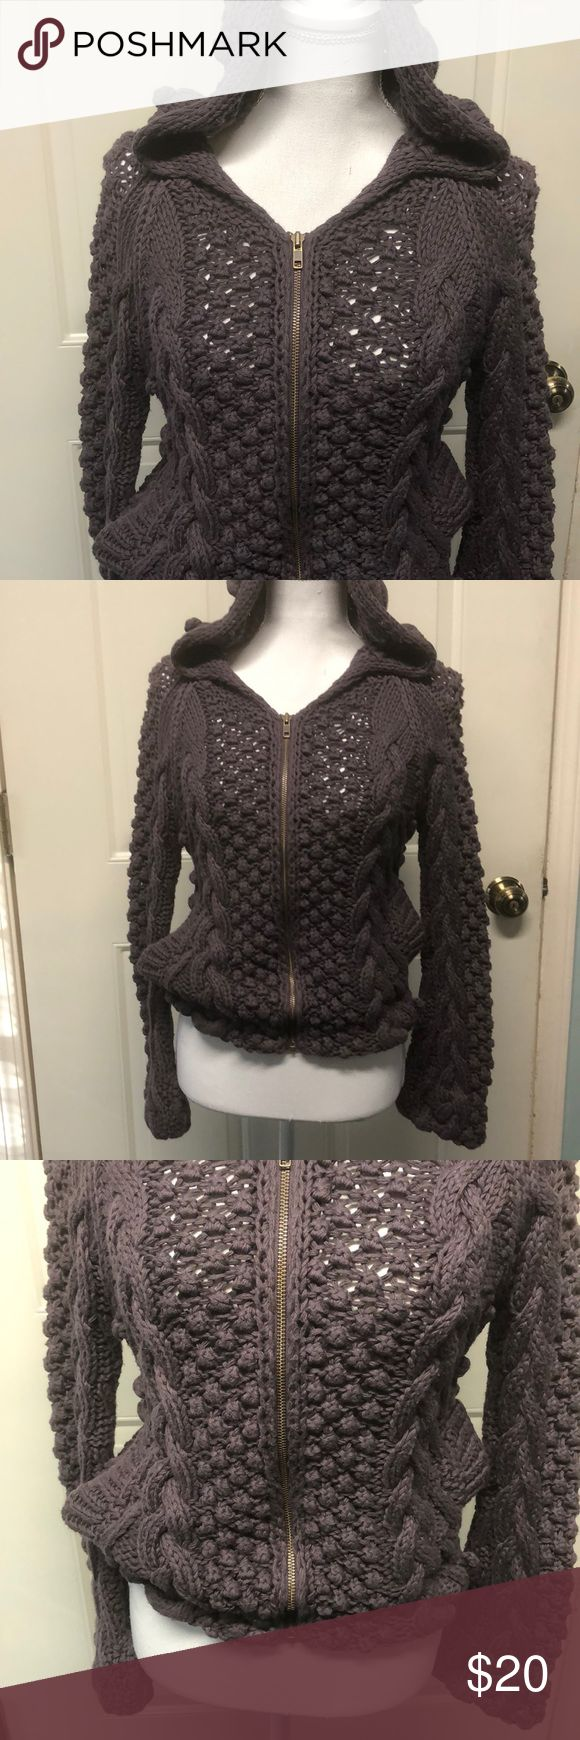 MODA XS crochet Zip Up Sweater with hood Women's XS MODA International crochet Zip Up Sweater with hood, very comfy!! Excellent condition no rips, stains, pulls ➡️Reasonable offers will be accepted! Same or next business day shipping on all purchases!💕 Moda International Sweaters Shrugs & Ponchos